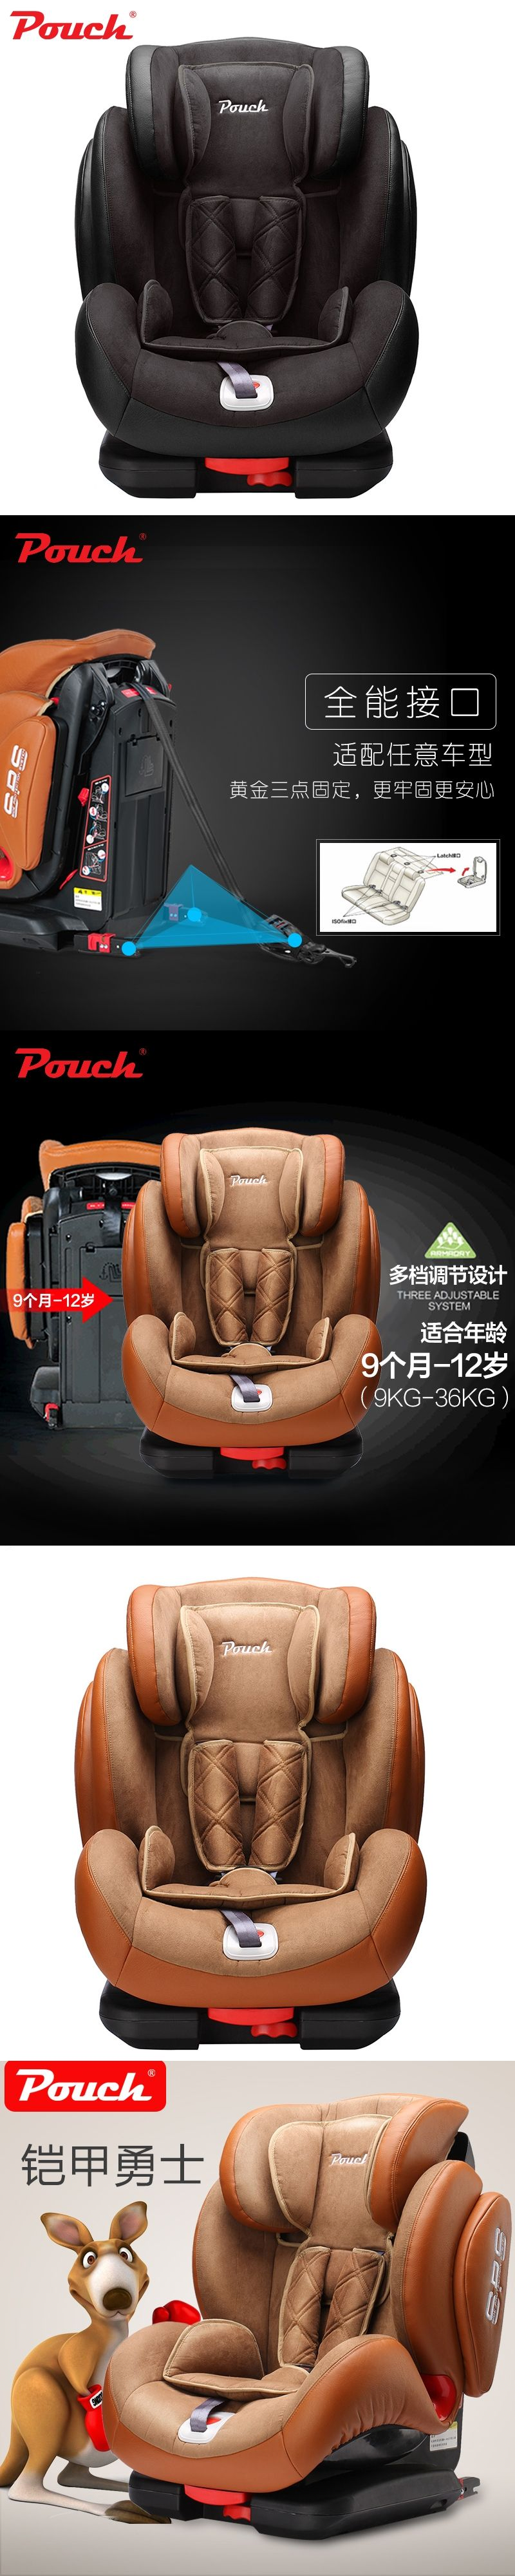 Pouch child safety seat isofix 9 months -12 years old baby car seat ...